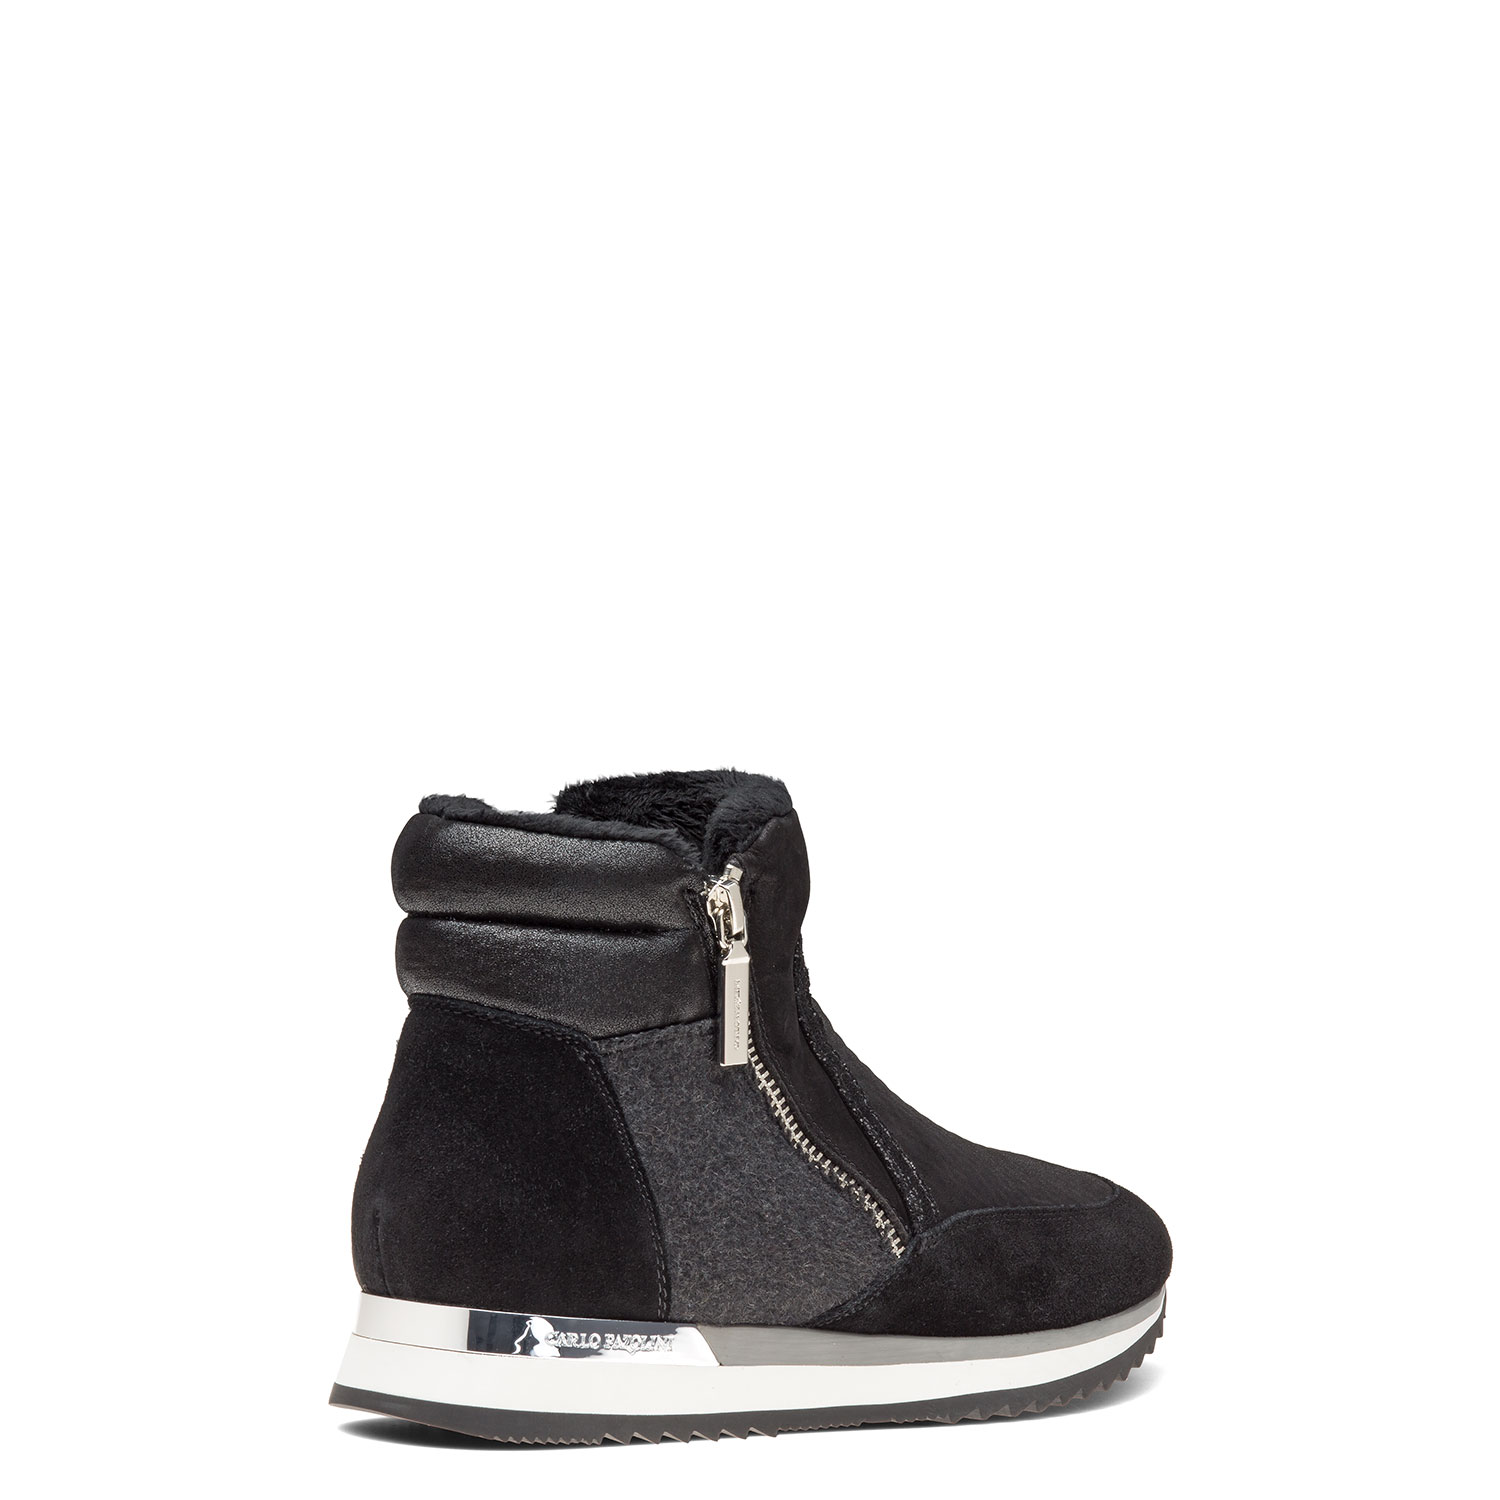 Women's cold weather ankle boots CARLO PAZOLINI JH-END4-1T